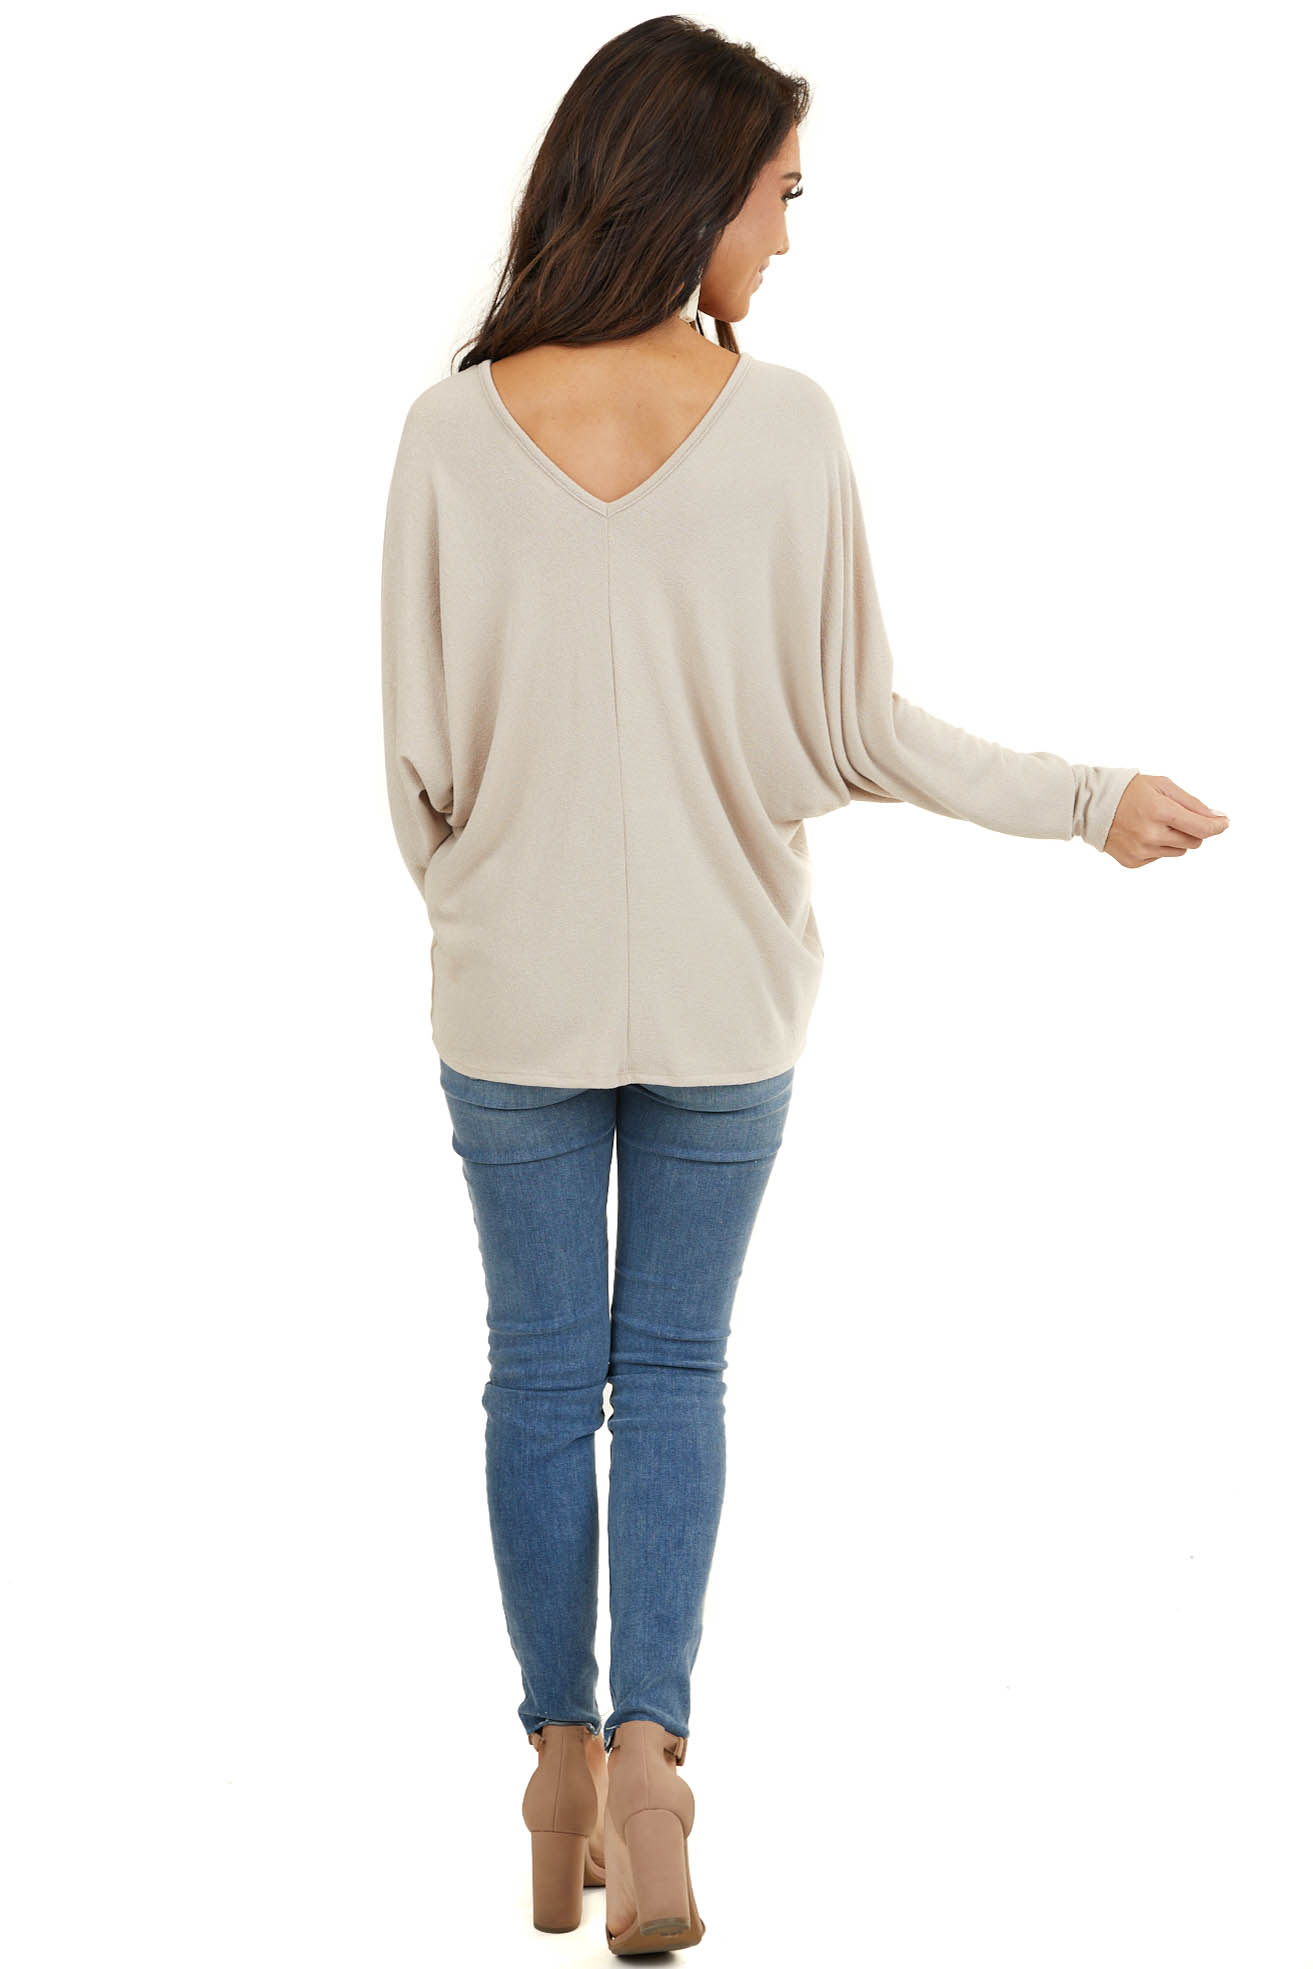 Tan V Neck Knit Top with Long Dolman Sleeves and Center Seam